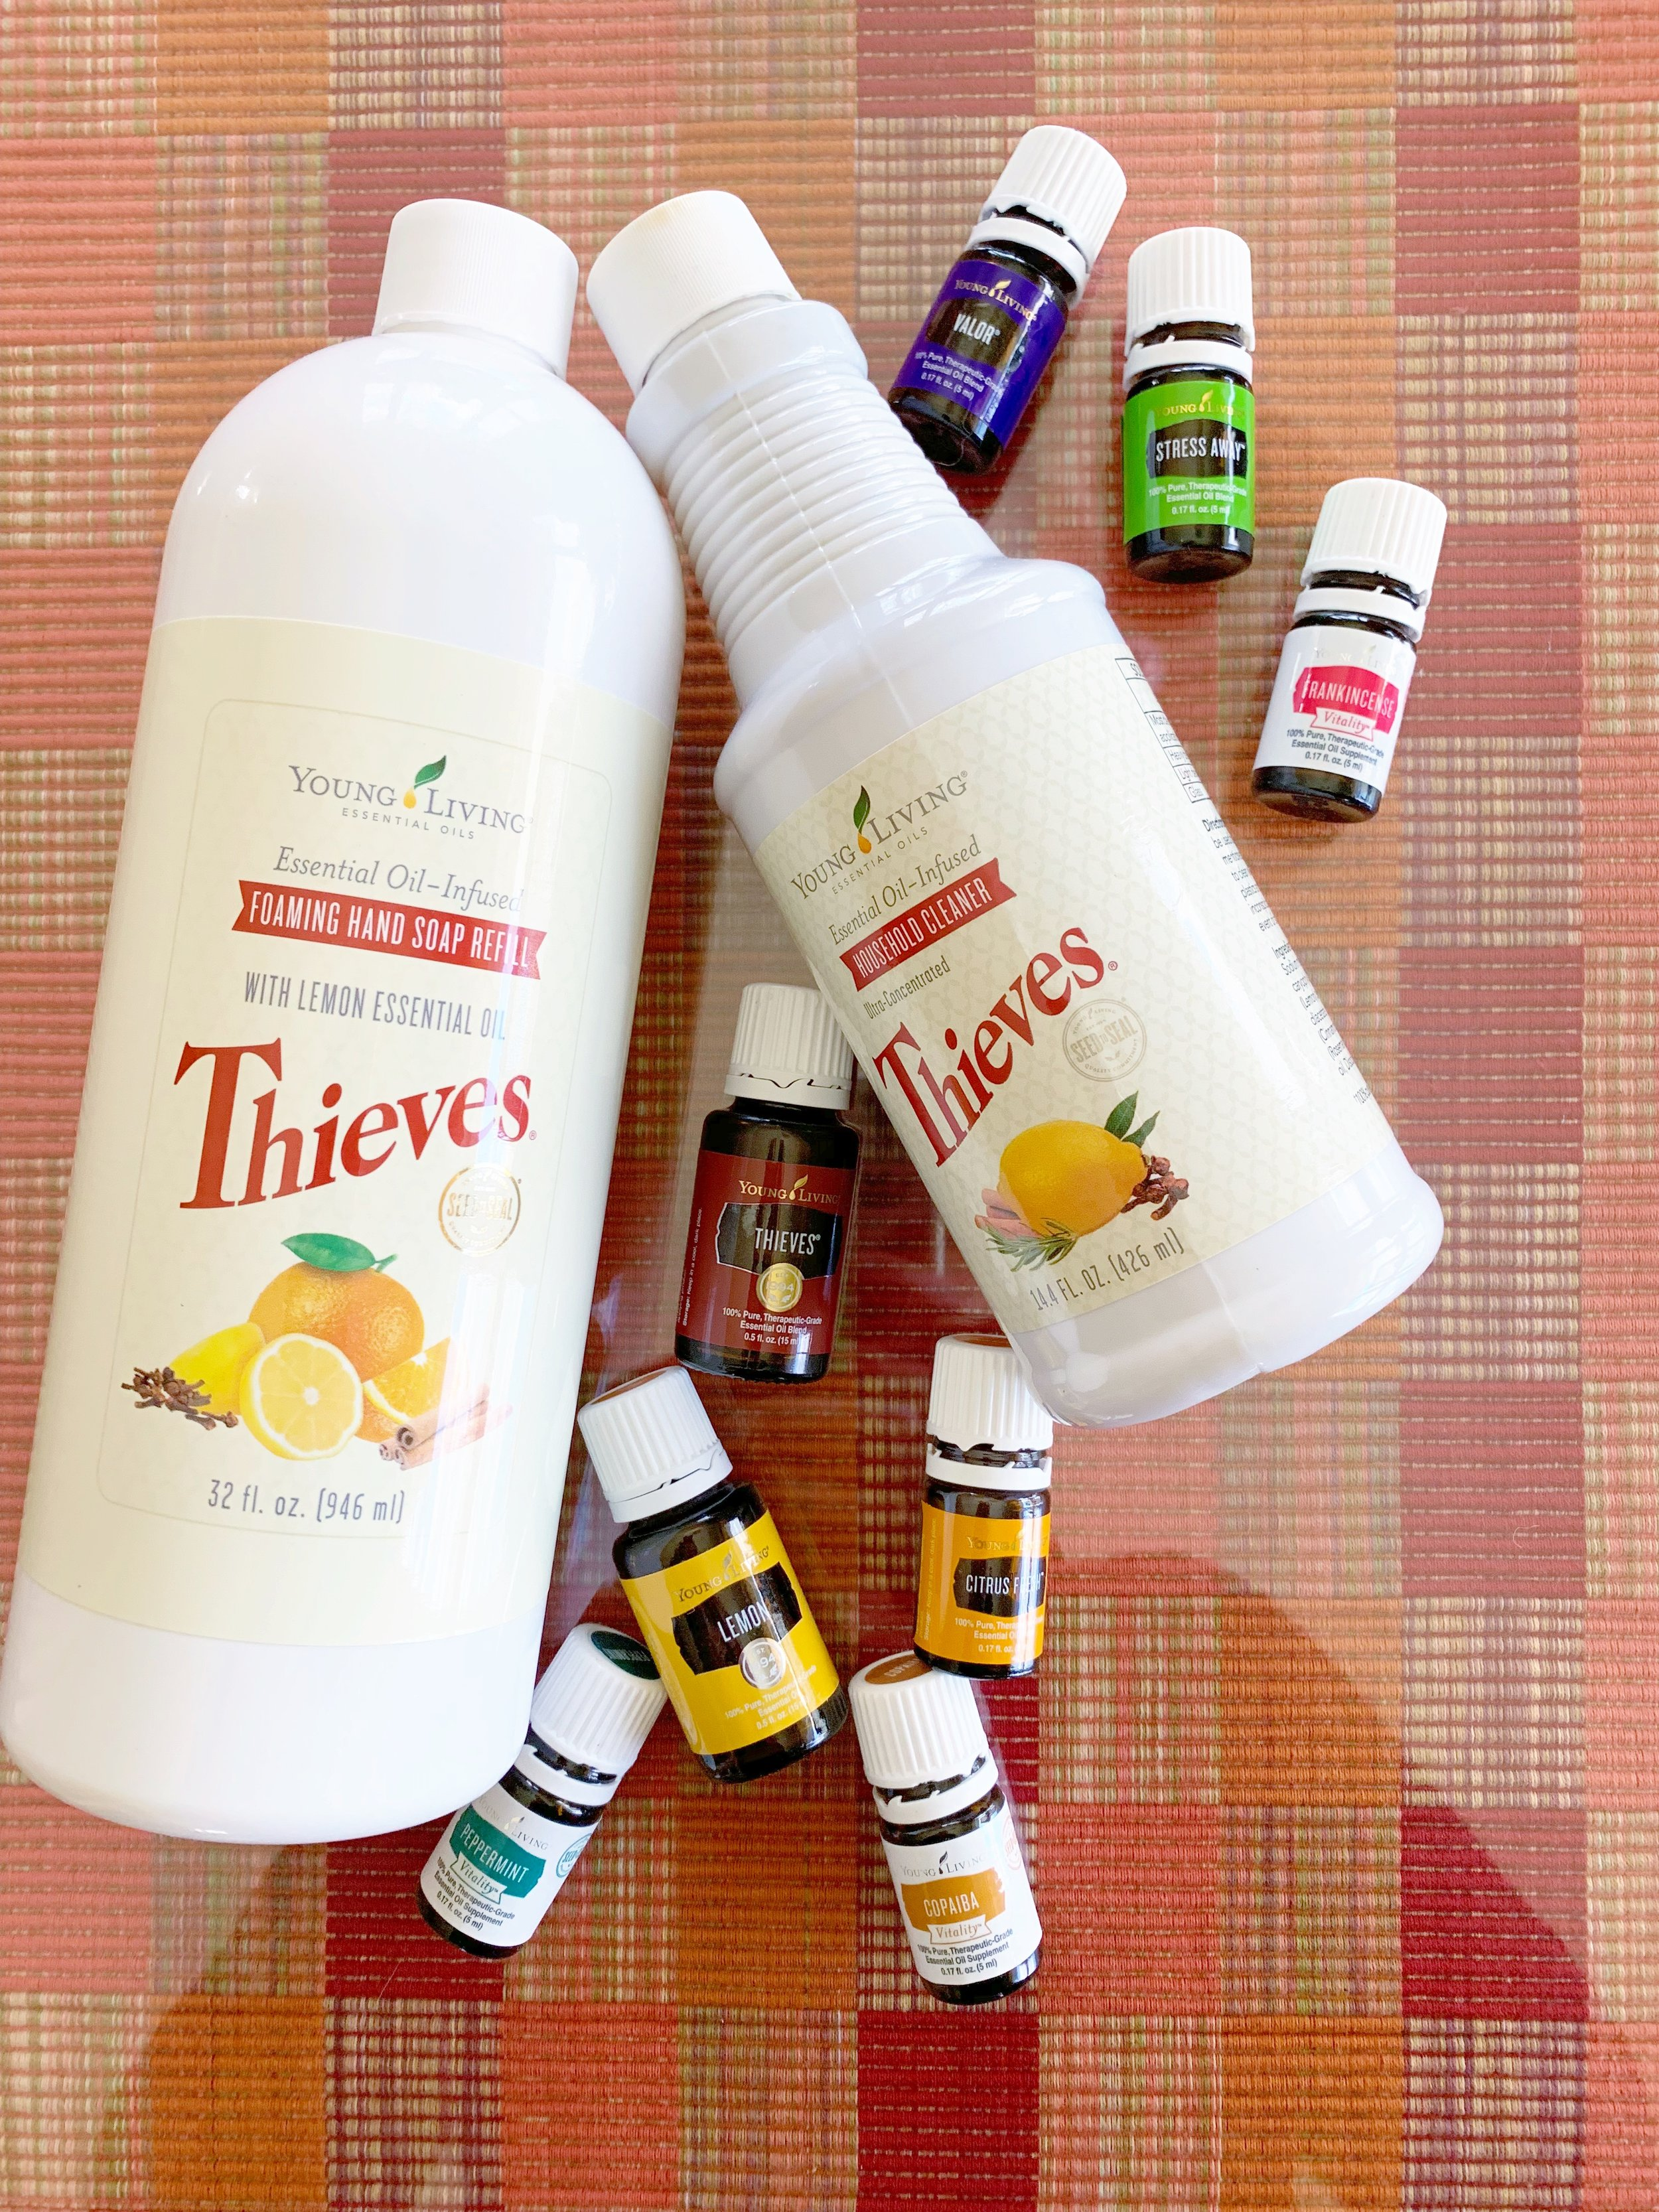 A few of our favorite Young Living products!